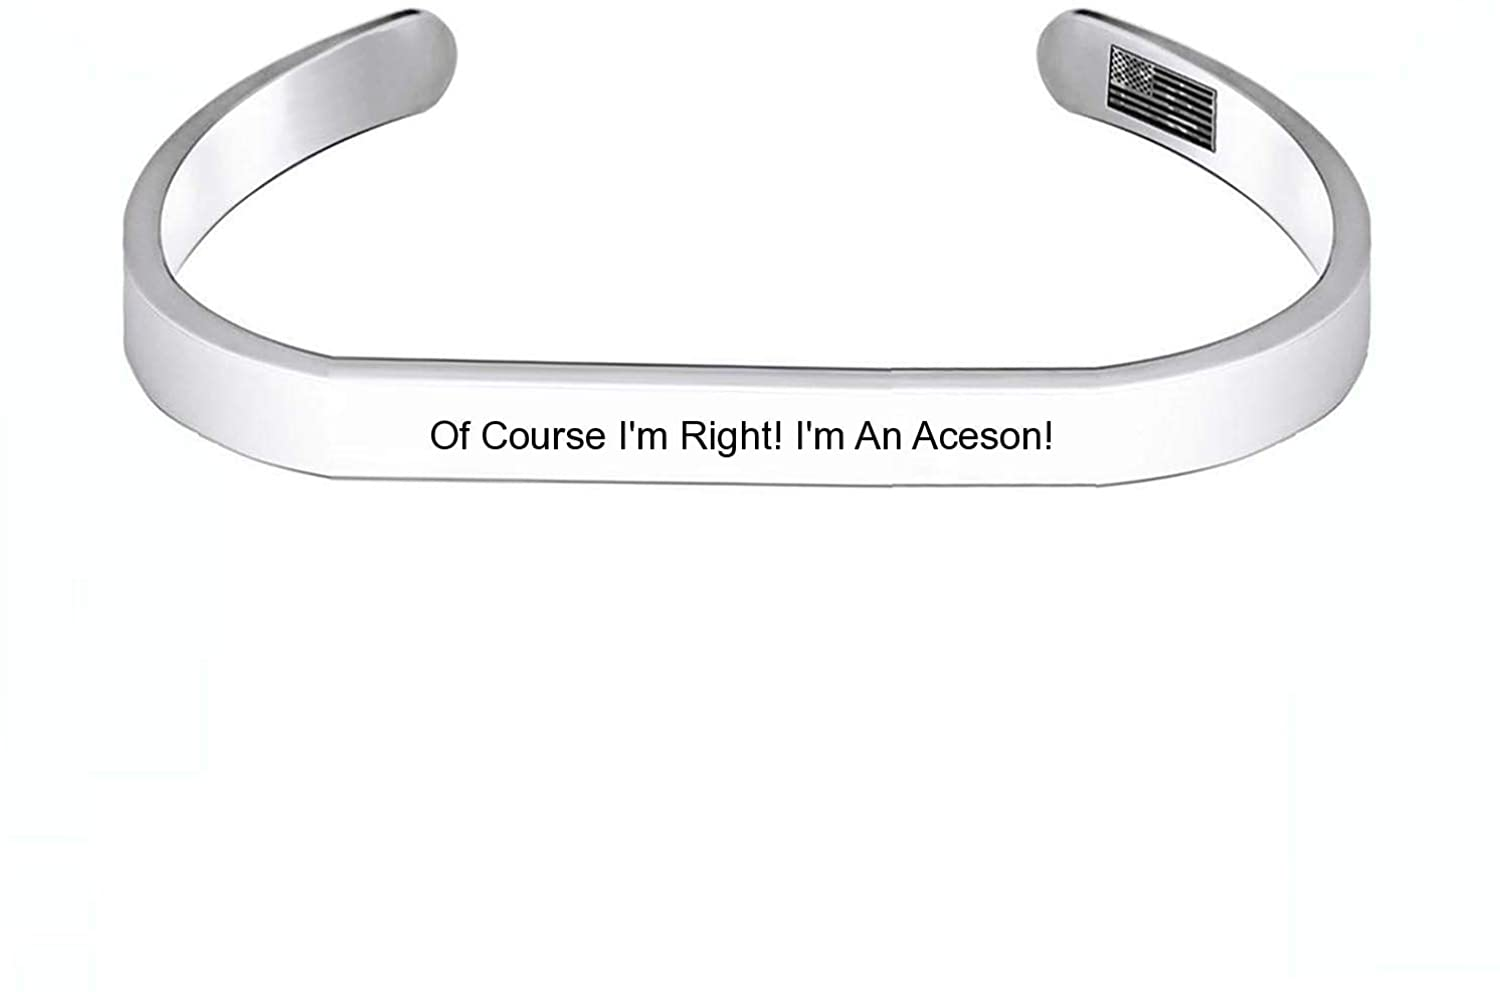 Enhome Cuff Bracelets of Course I'm Right! I'm an Aceson! for Women Birthday Gifts for Her Silver Cuff Bangle American Flag Bracelet